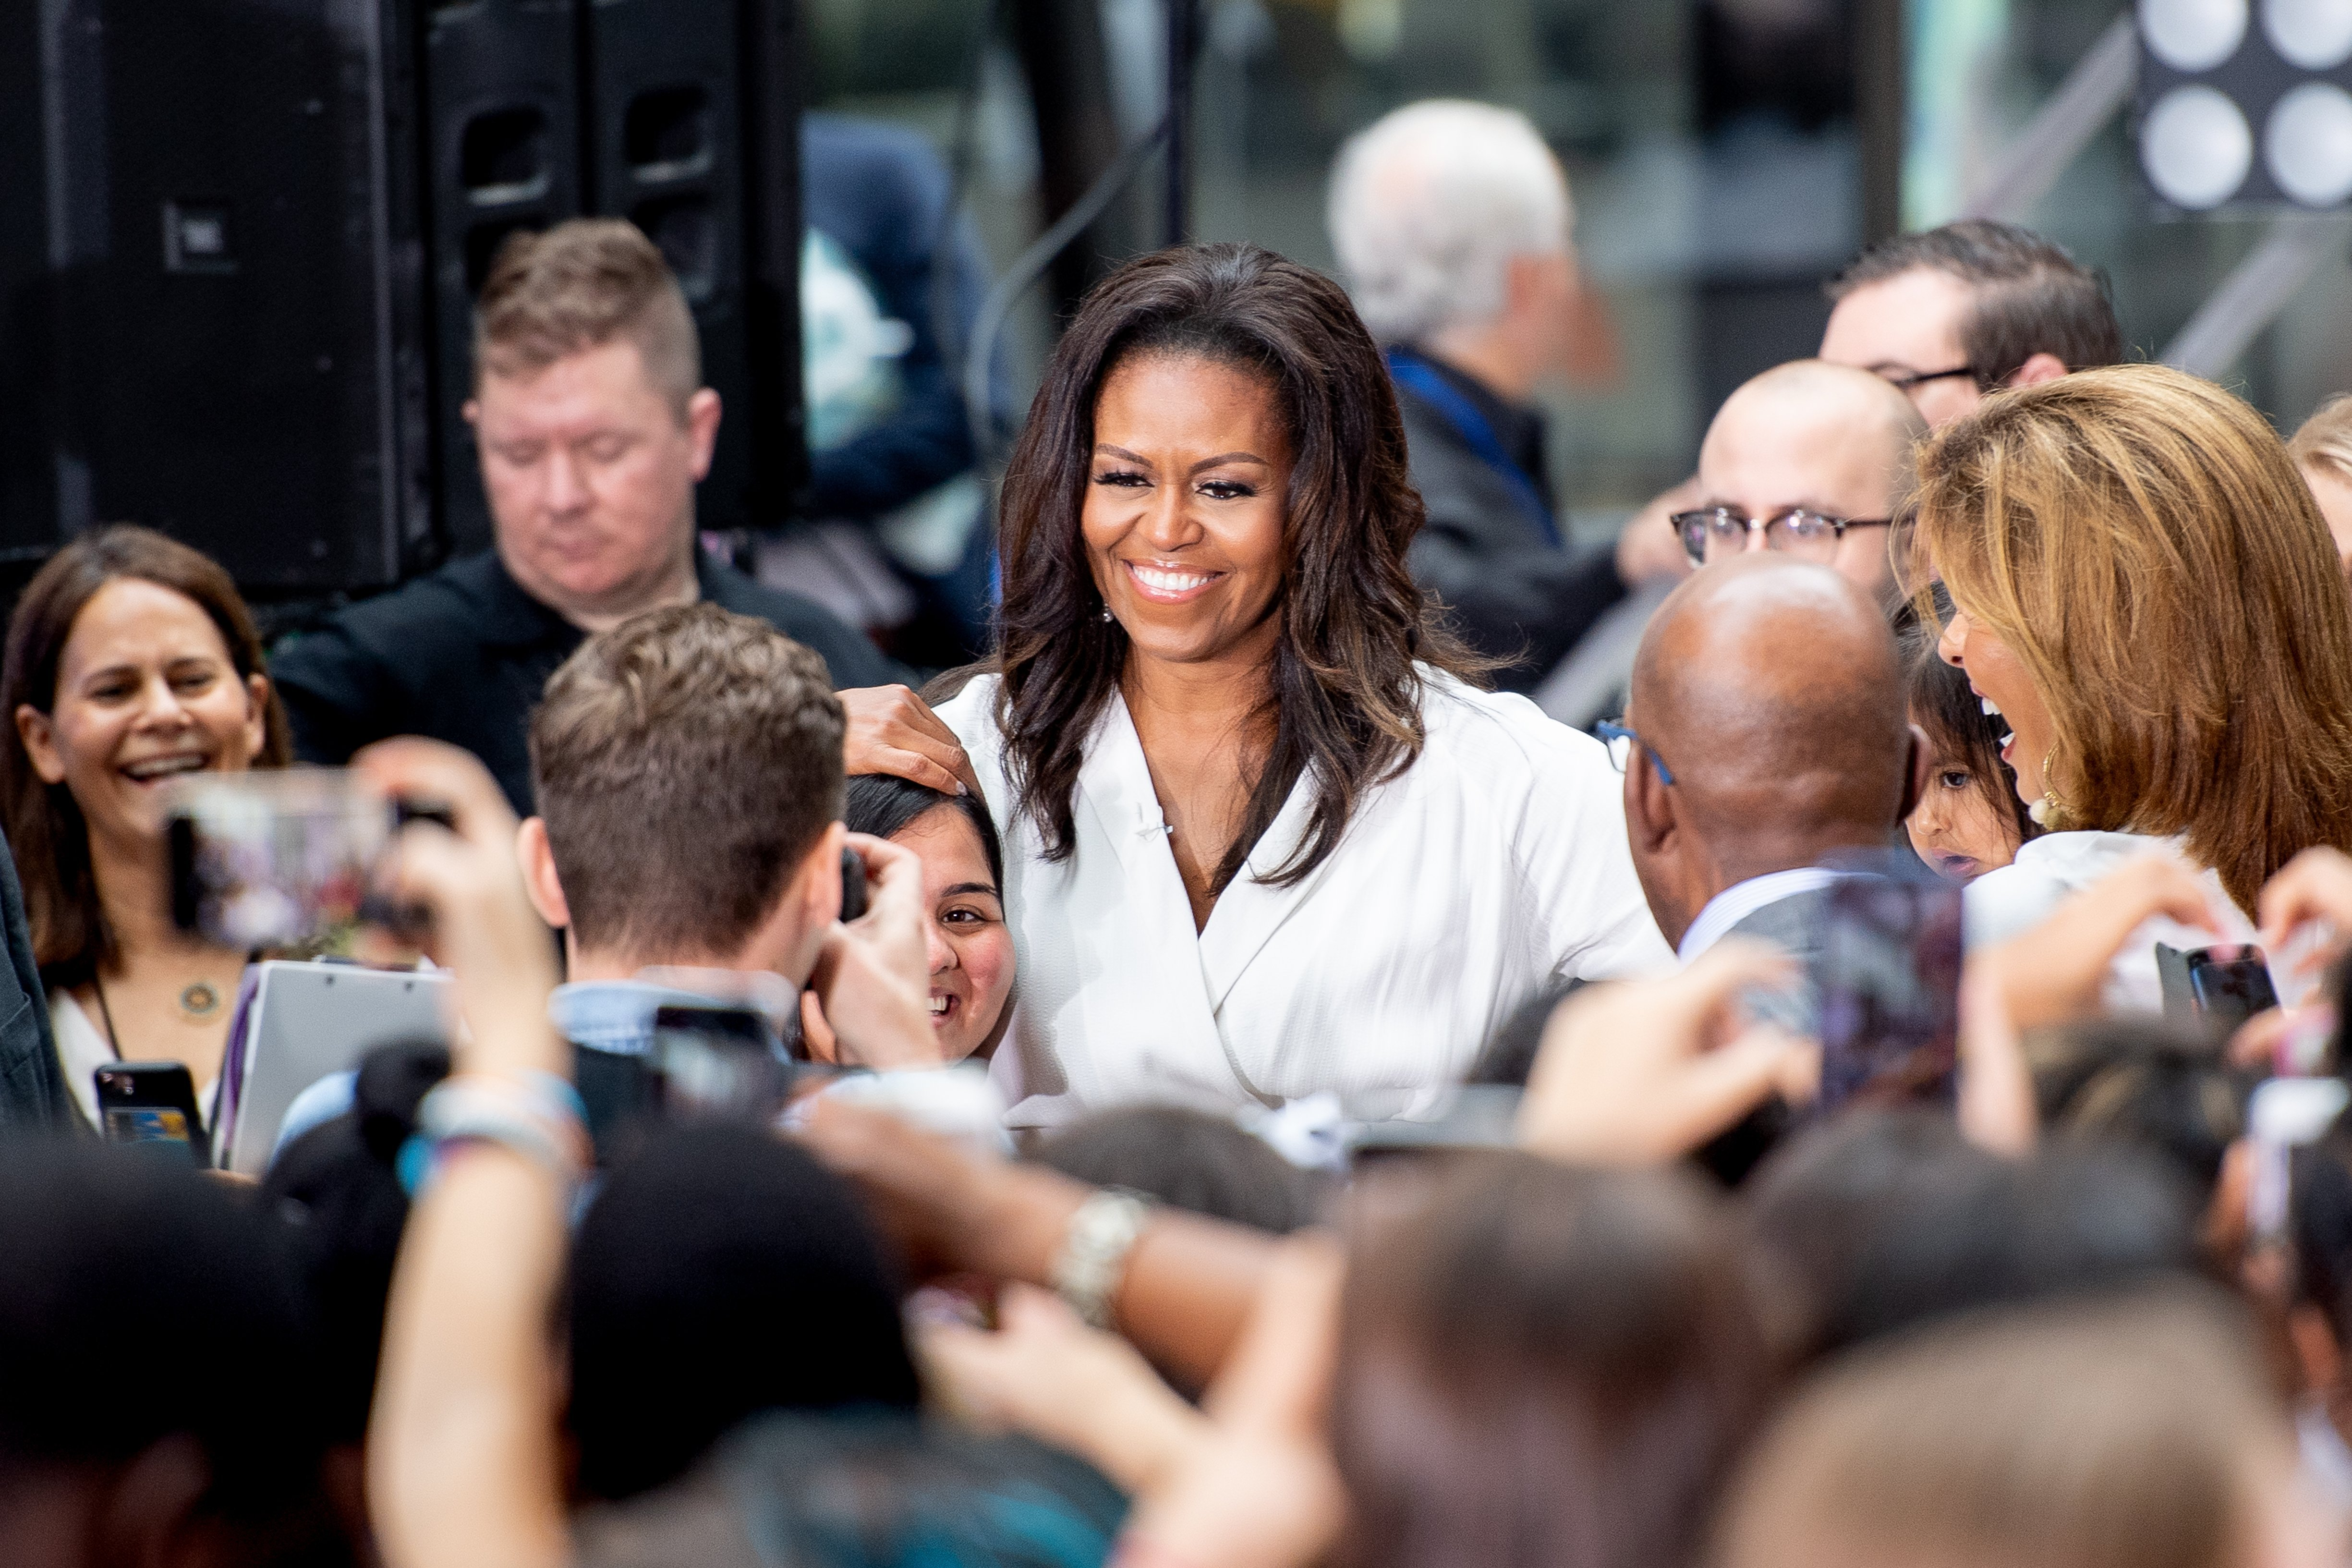 Michelle Obama attends NBC's 'Today' Celebrates The International Day Of The Girl at Rockefeller Plaza on October 11, 2018, in New York City. | Source: Getty Images.